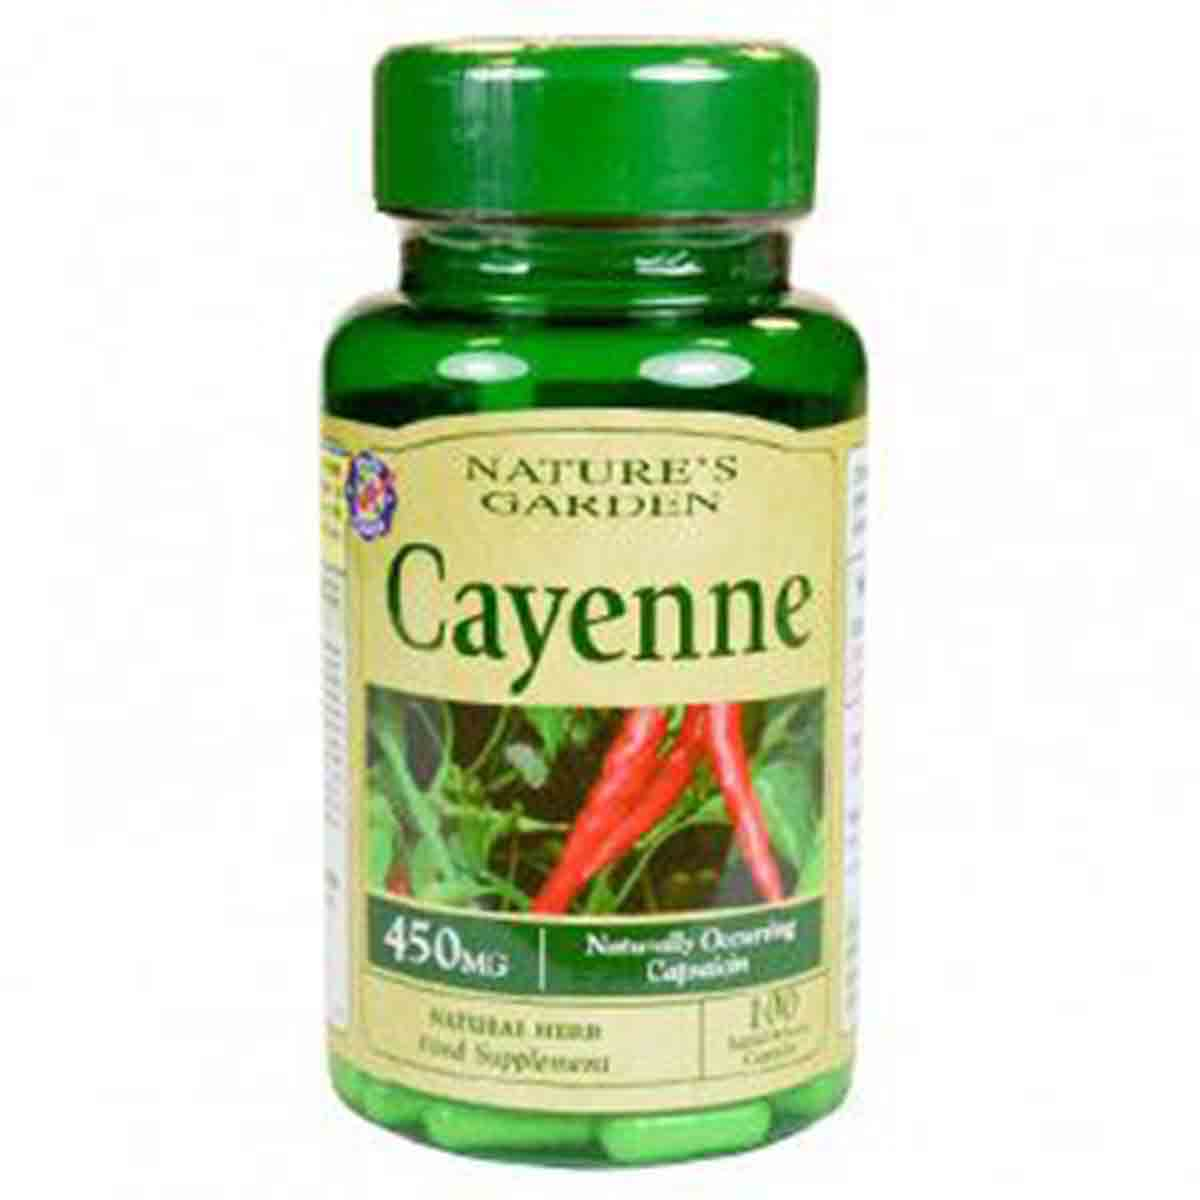 Nature's Garden Cayenne Capsules New